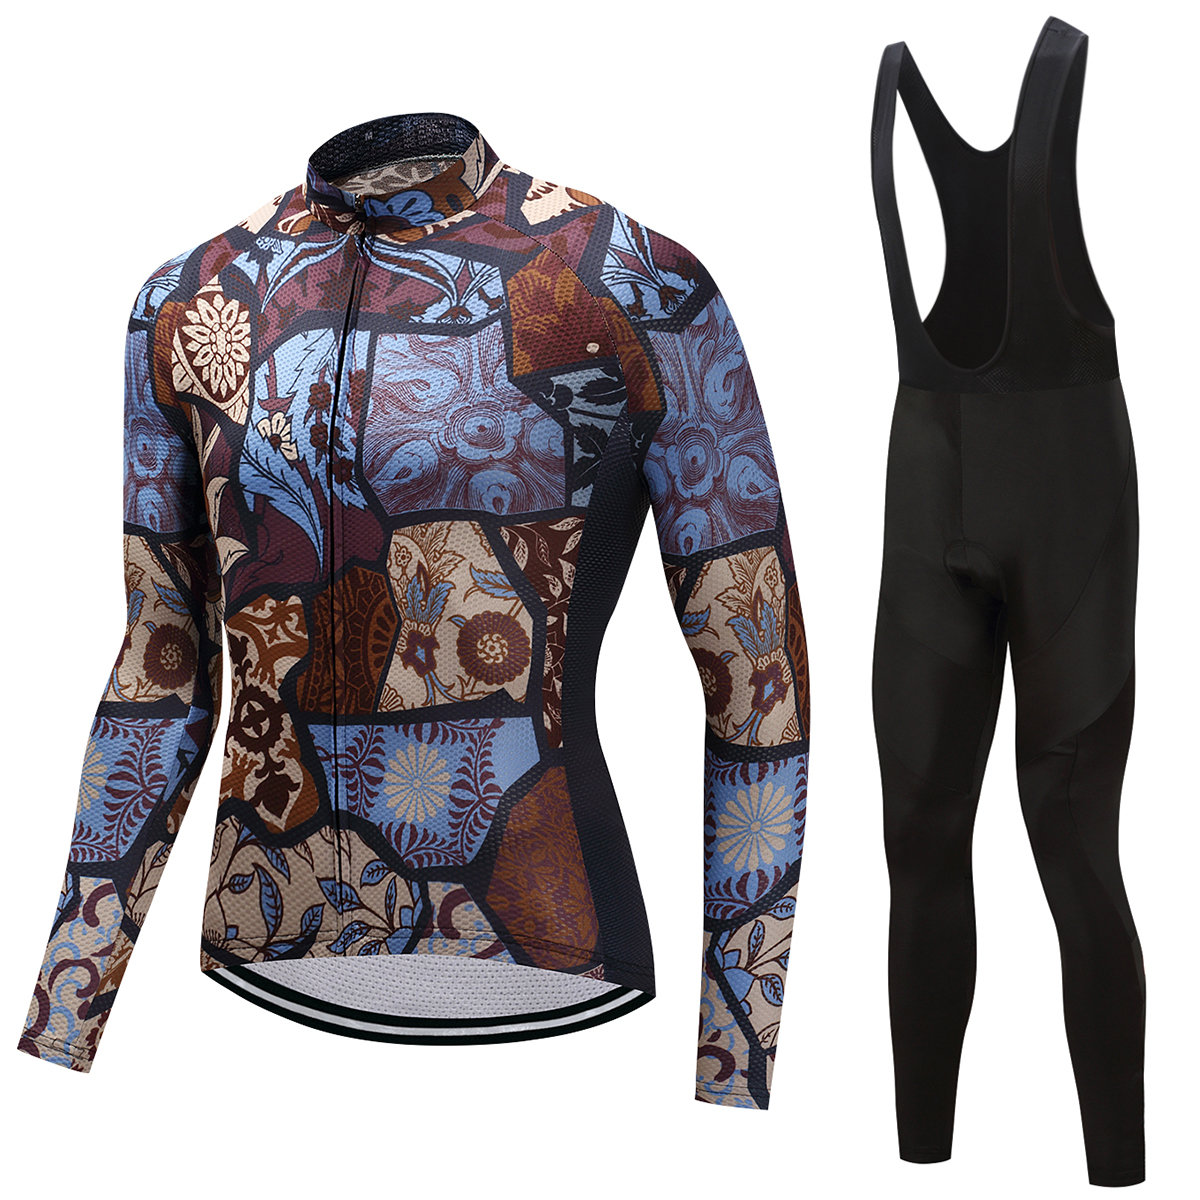 FUALRNY 2018 Pro Flier Winter Thermal Fleece Cycling Jersey Set Long Sleeve Bicycle Clothing MTB Bike Wear Maillot Ropa Ciclismo